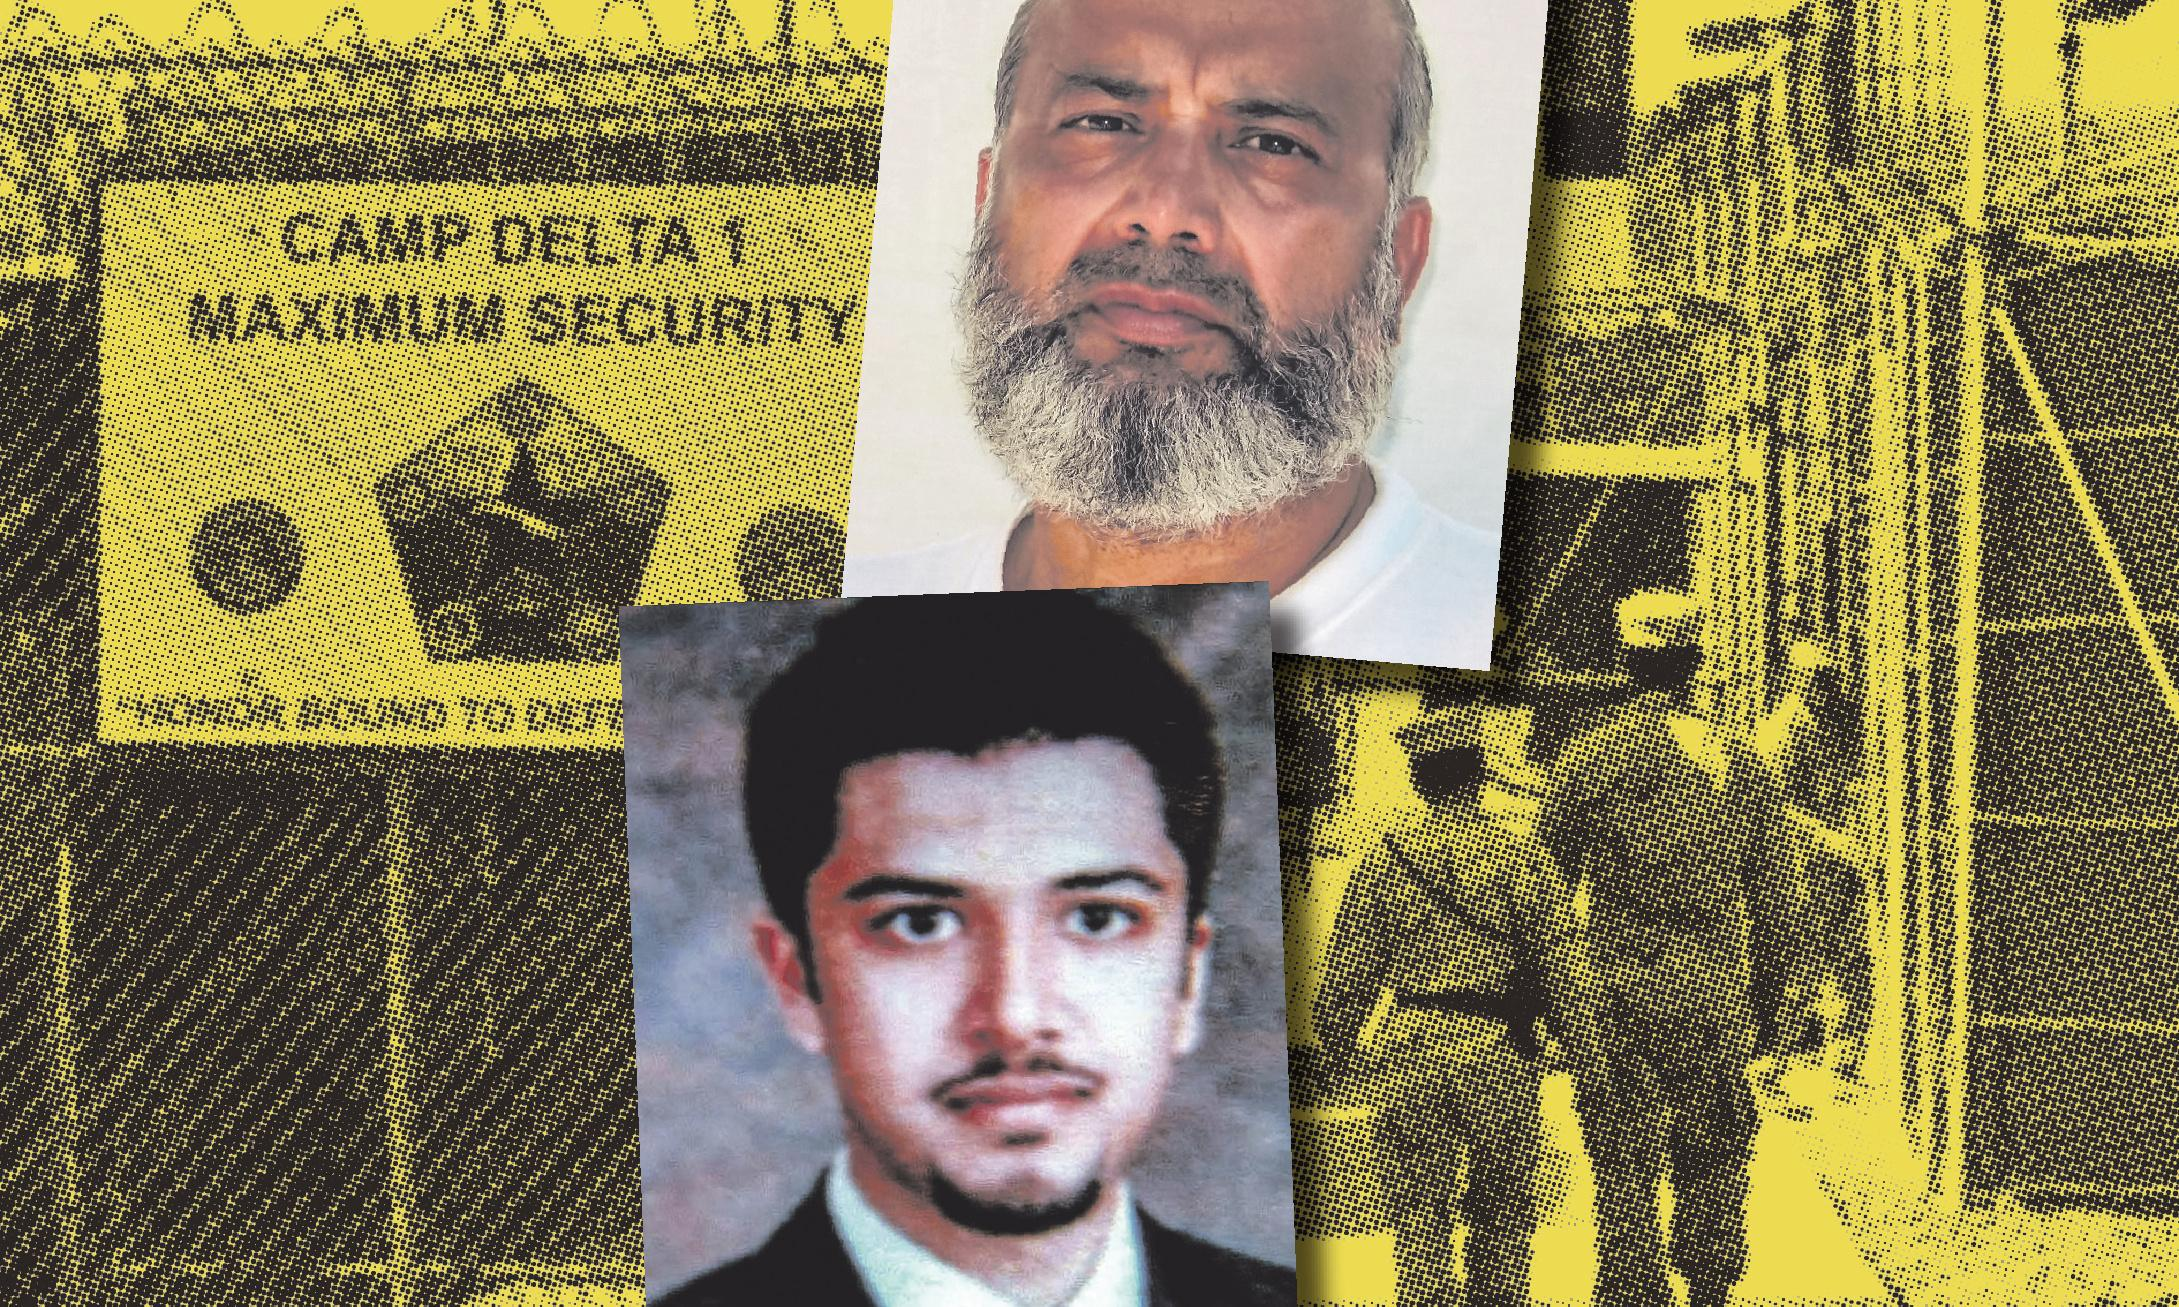 Forever prisoners: were a father and son wrongly ensnared by America's war on terror?